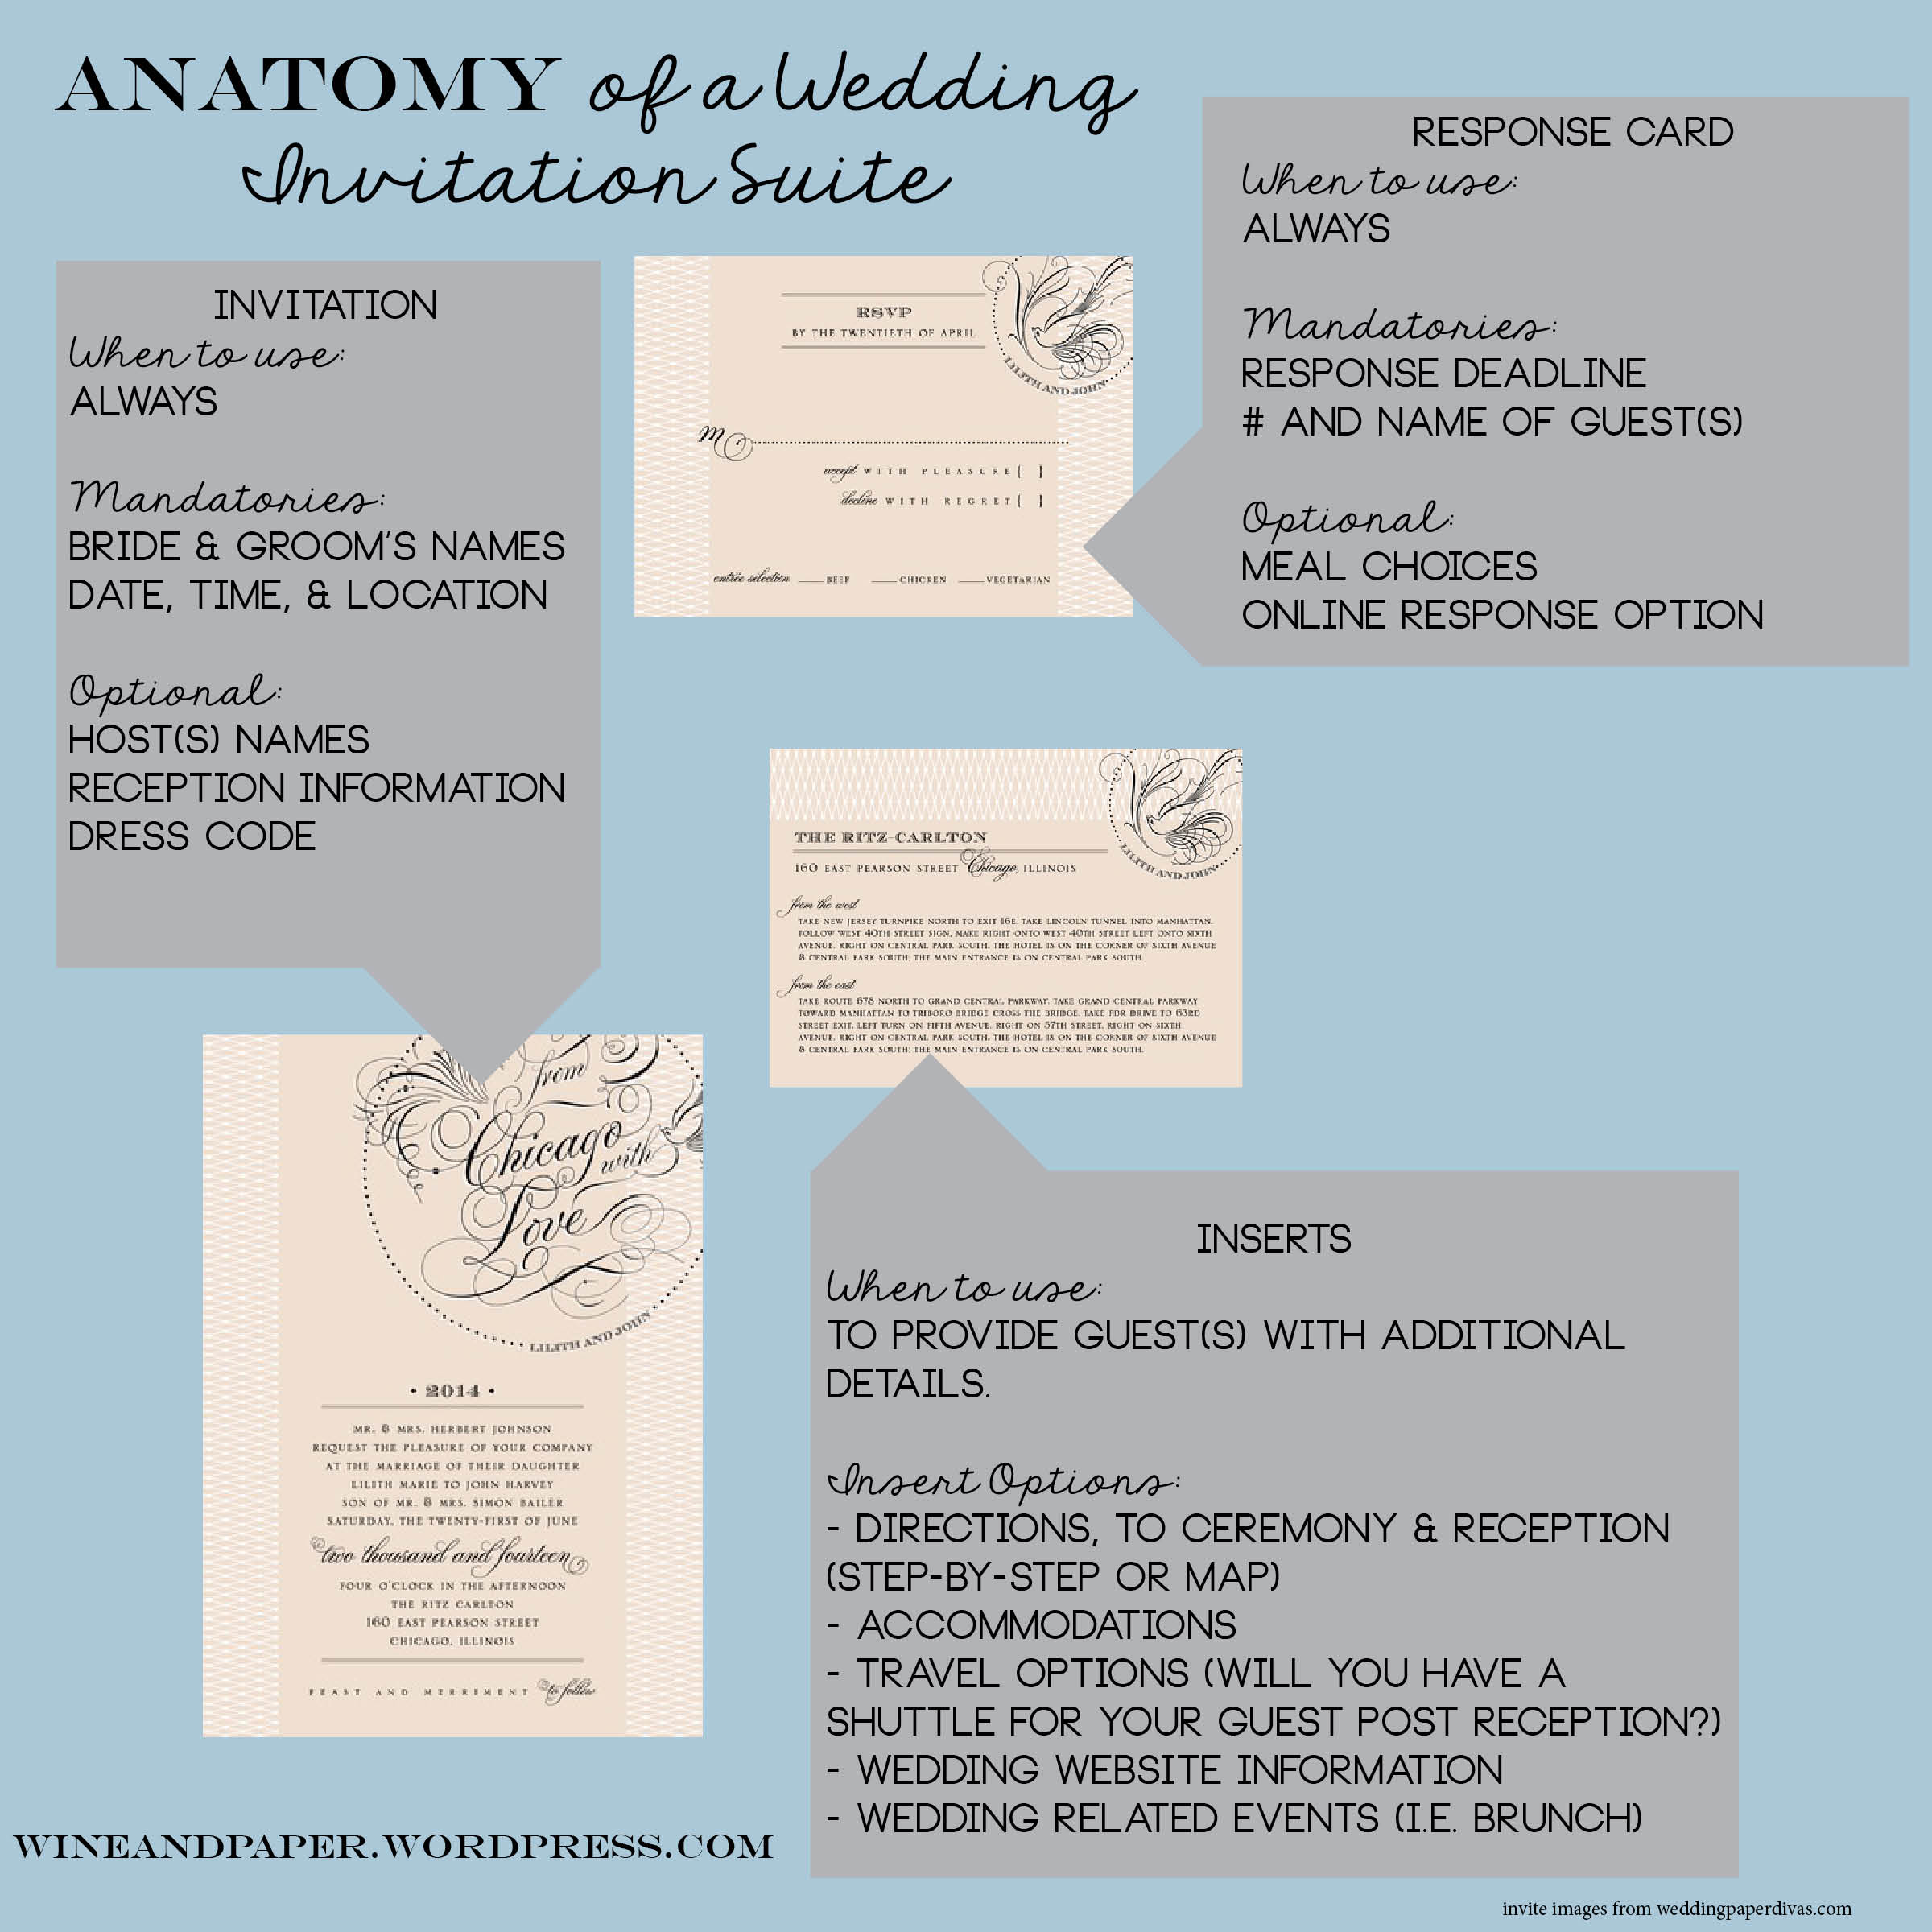 The anatomy of a wedding invitation suite wine paper the anatomy of a wedding invitation suite stopboris Image collections